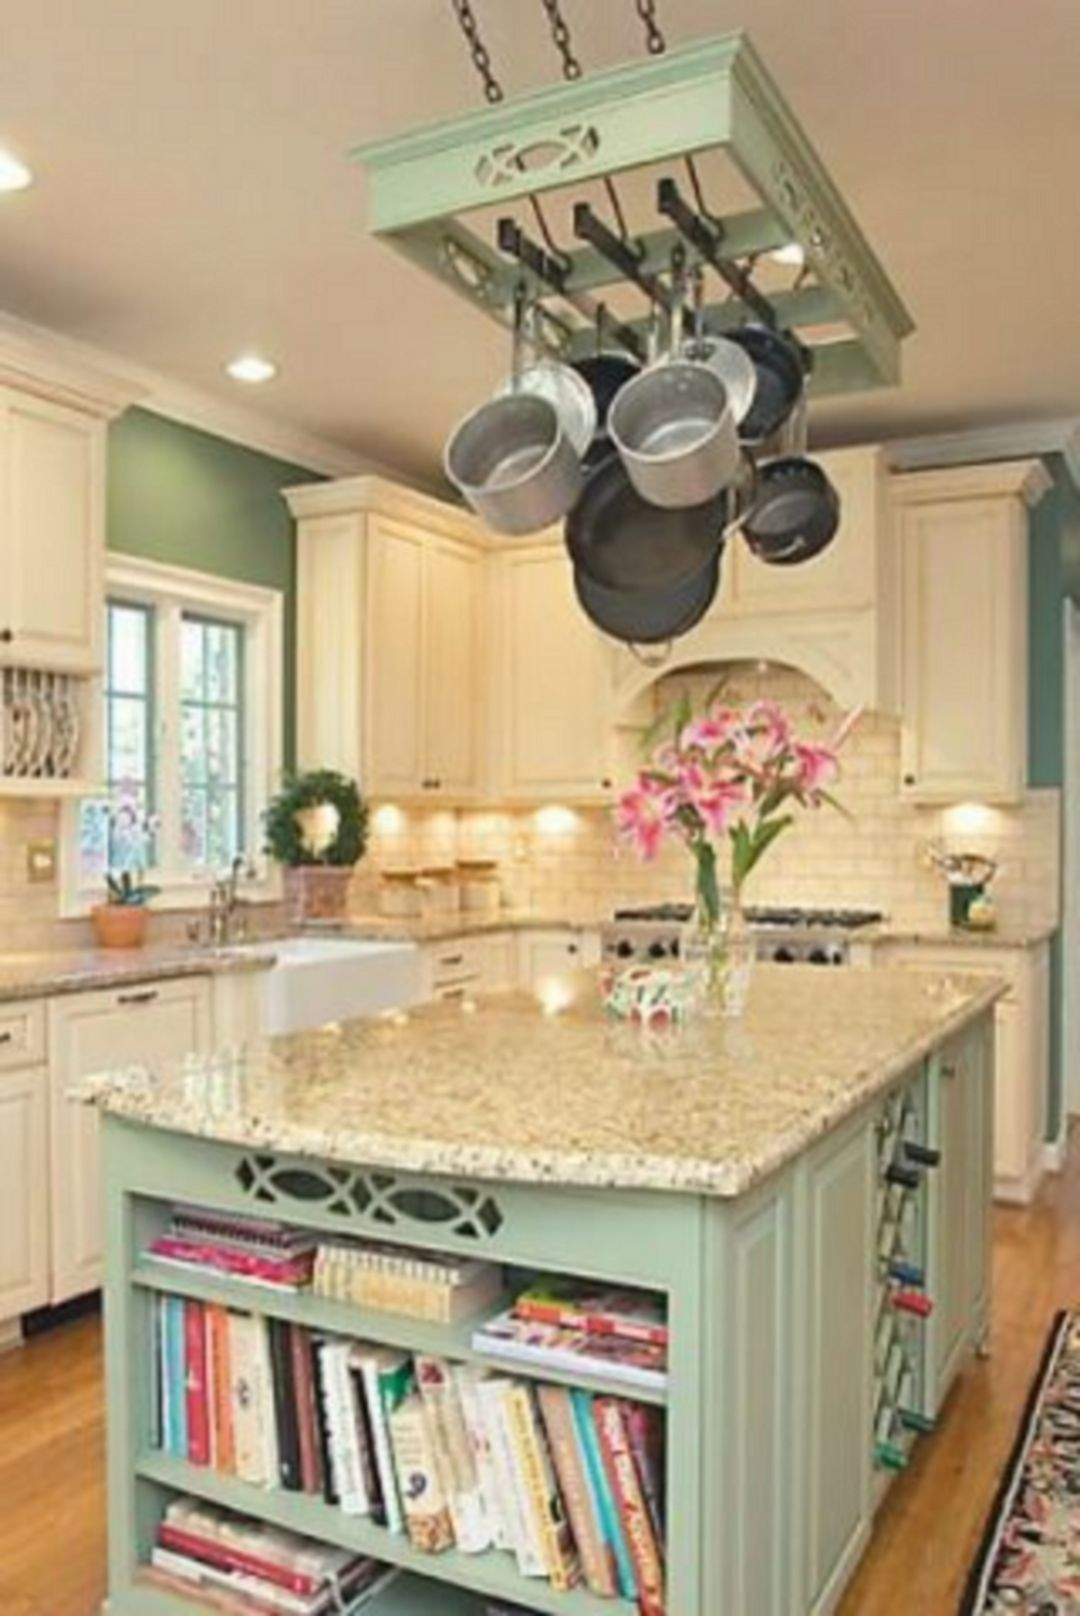 Astounding 40+ Most Beautiful Colorful Kitchen Design Ideas For Enjoyable  Cooking Ideas ...